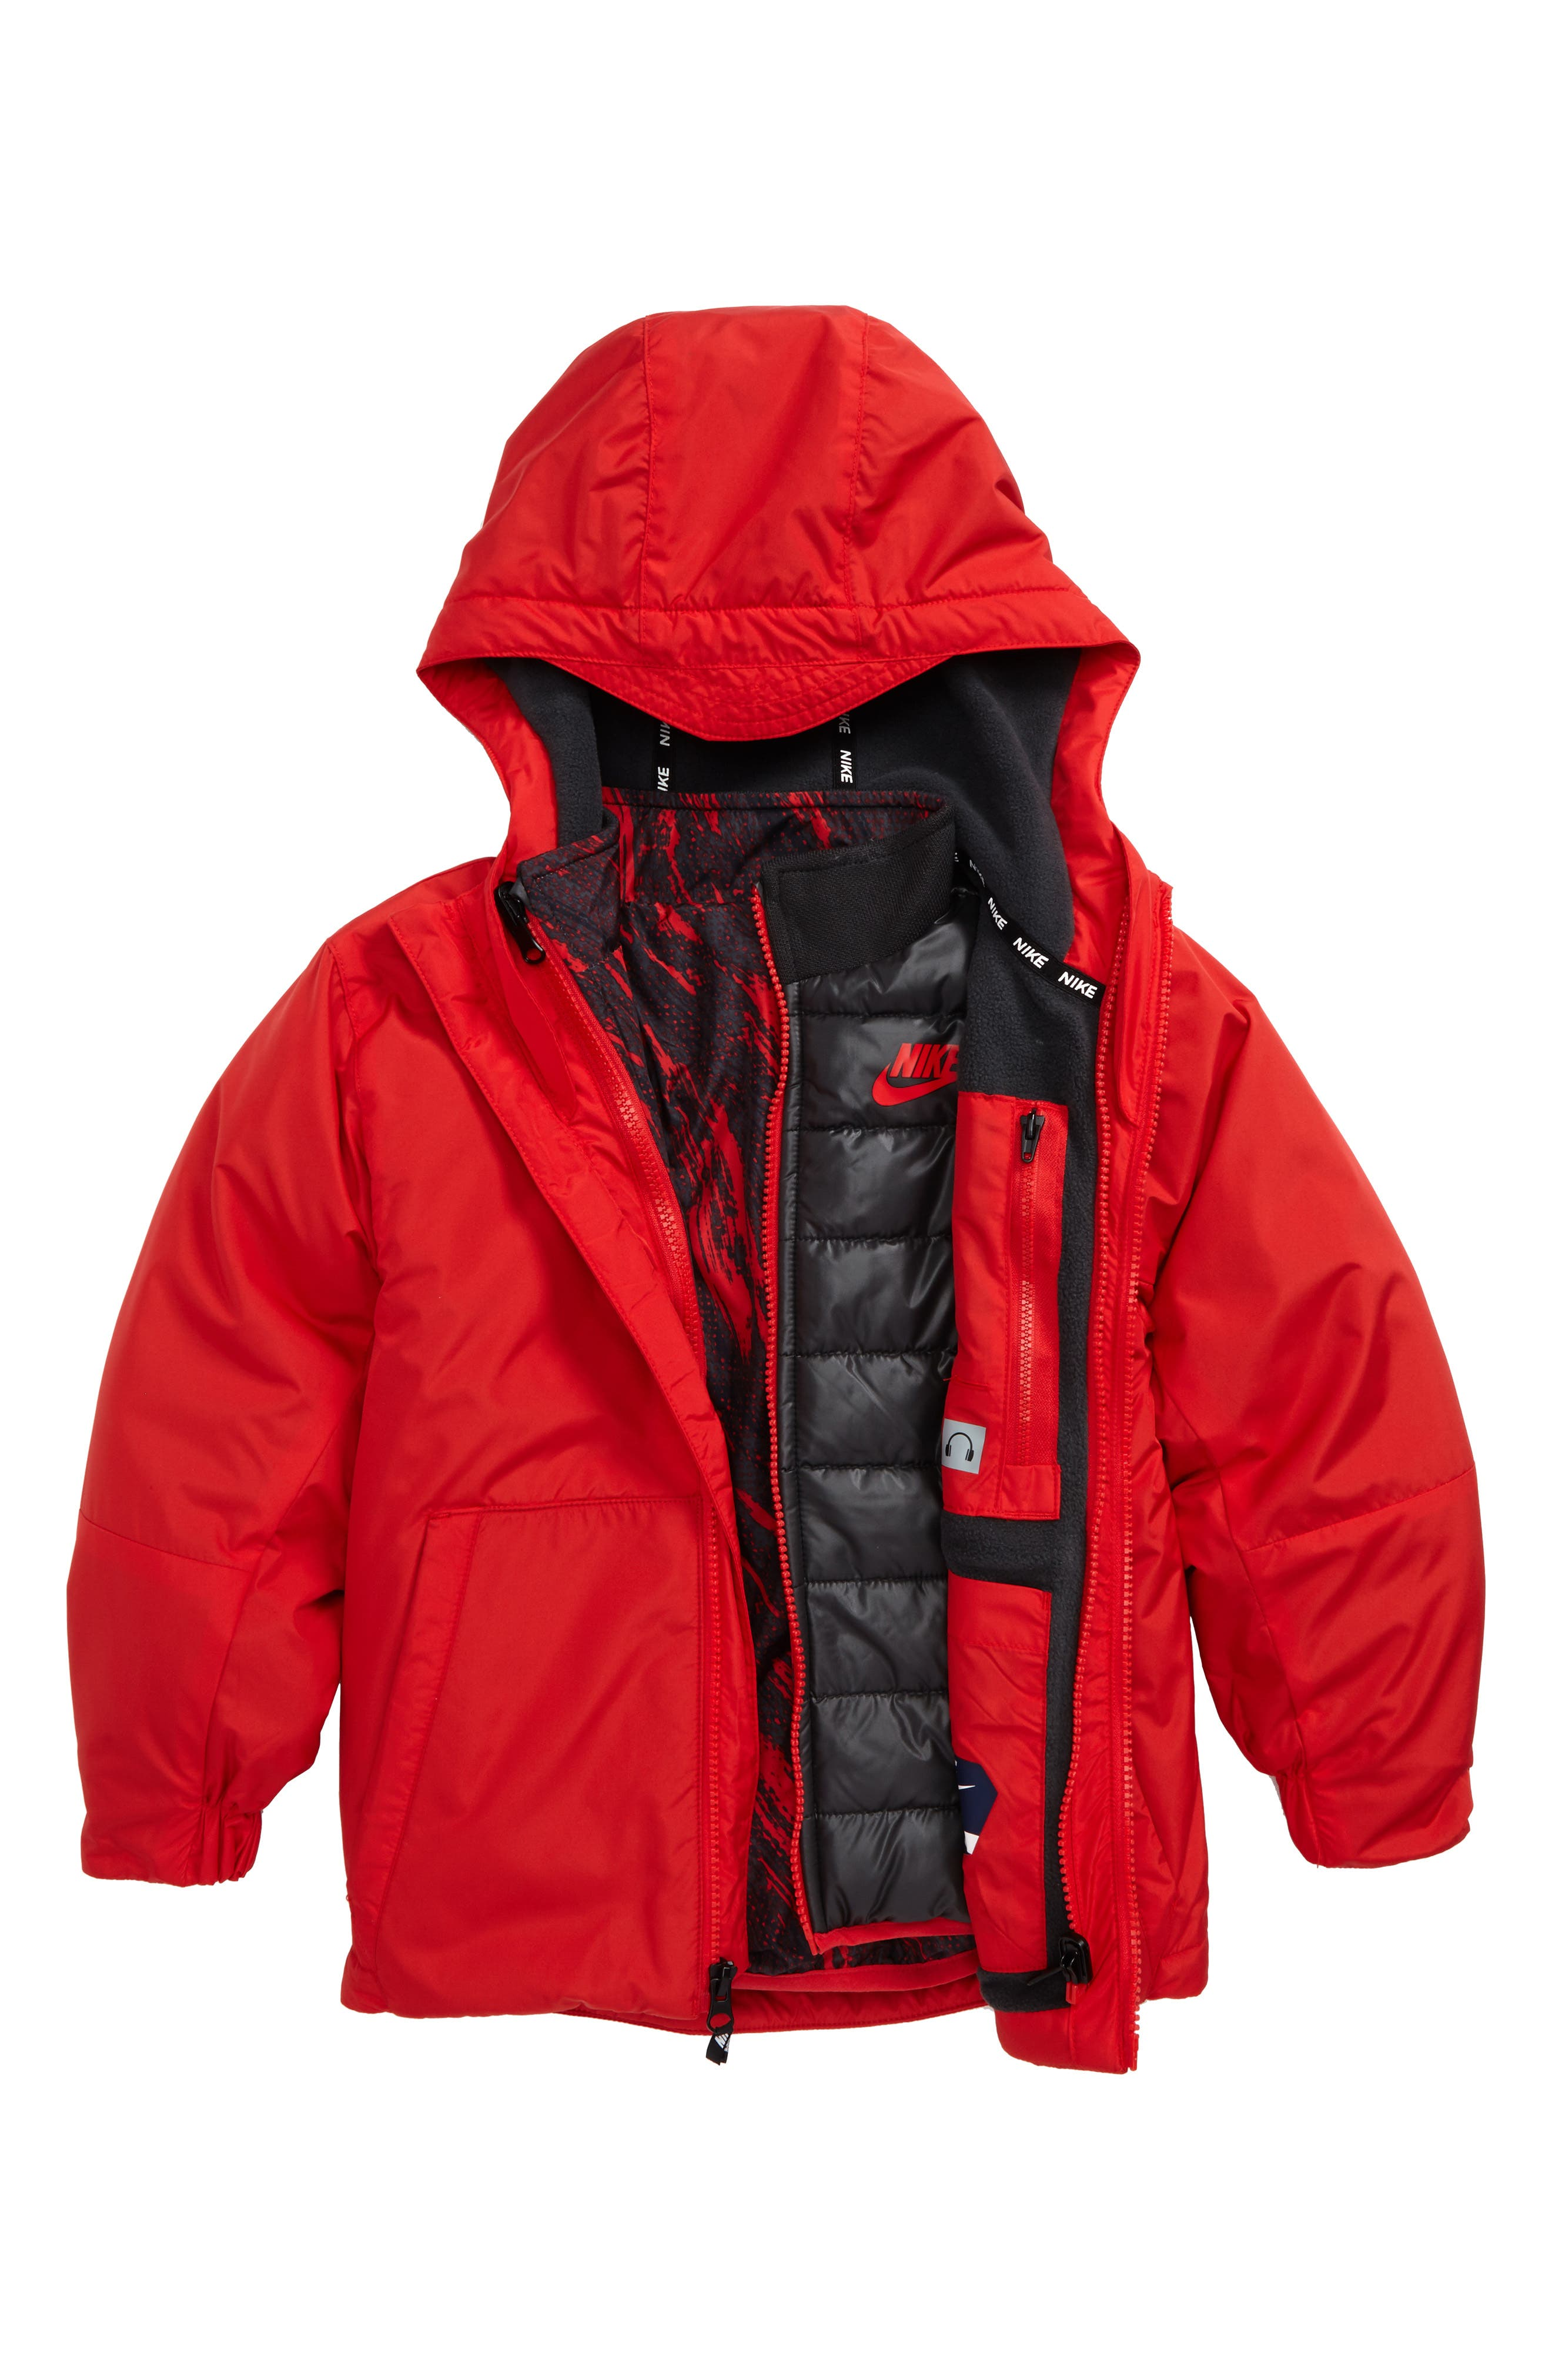 Systems 3-in-1 Jacket,                         Main,                         color, 622